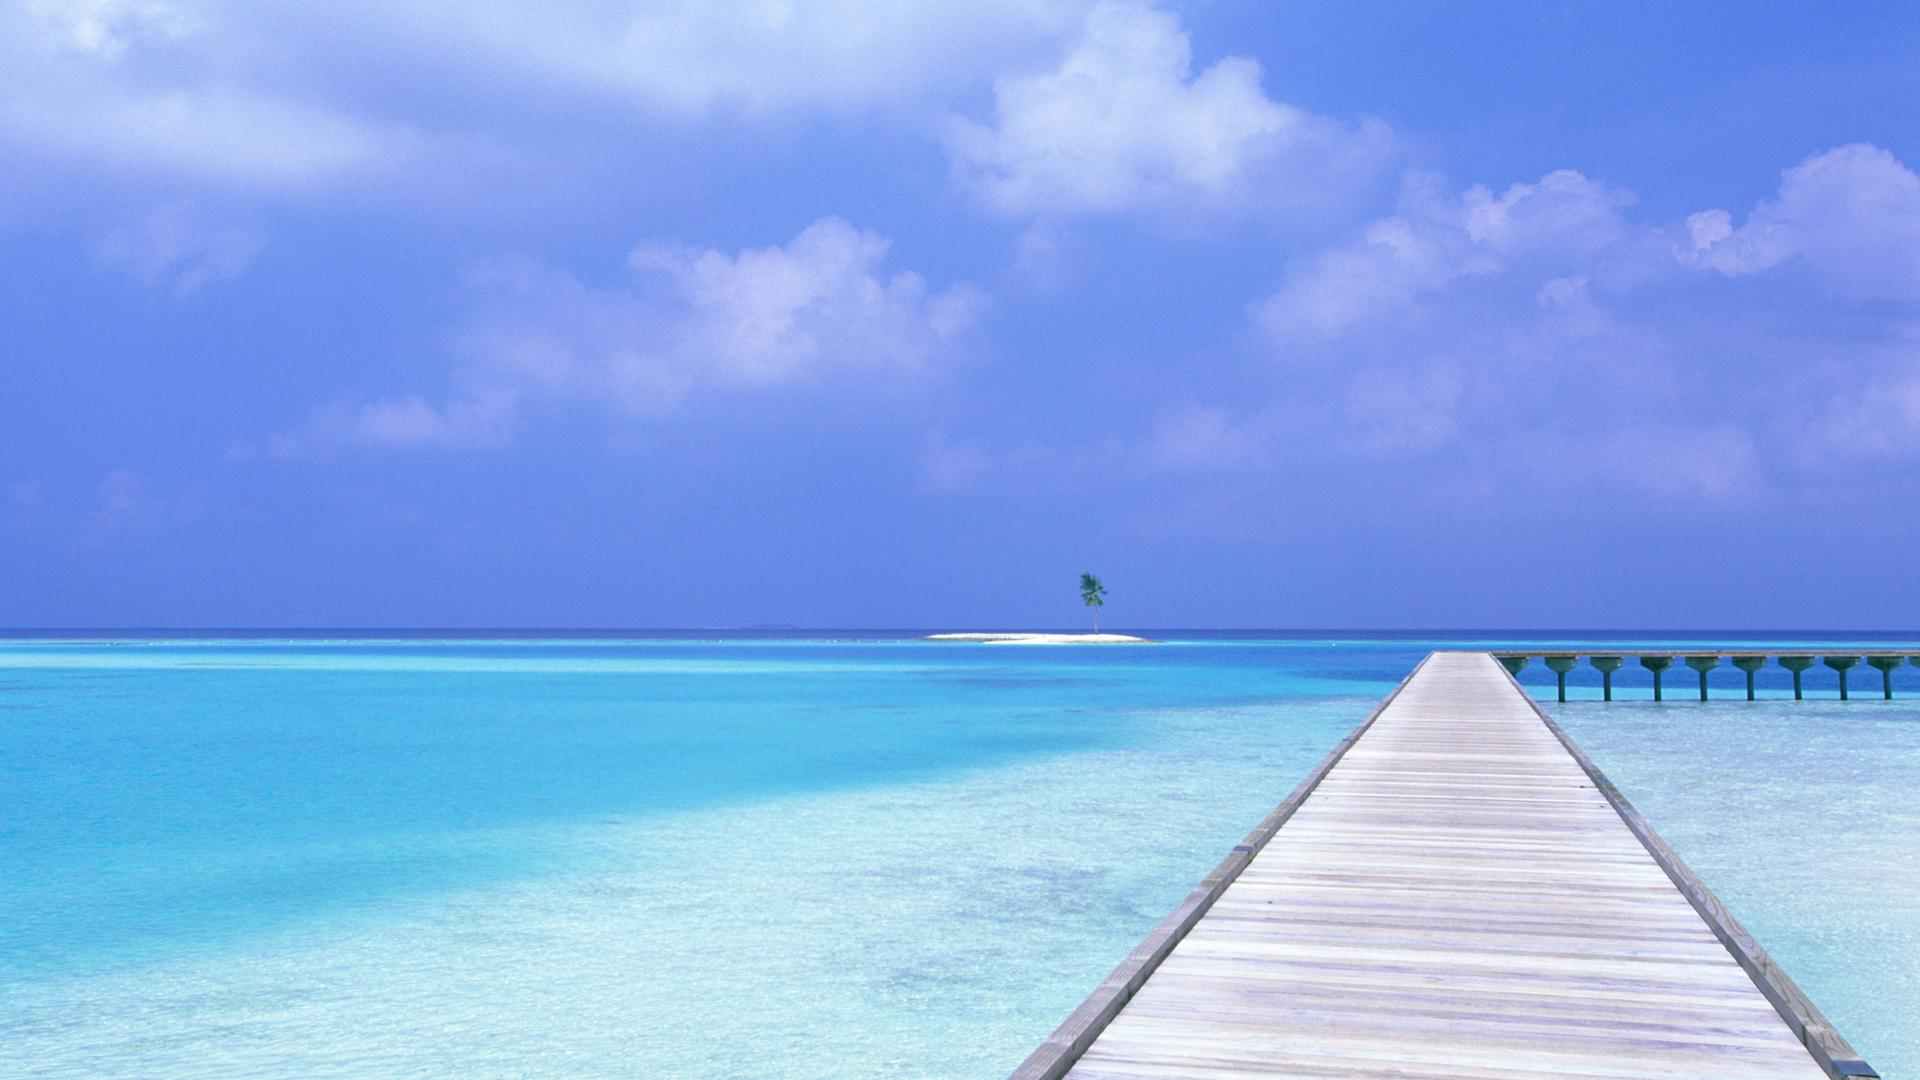 Pics Photos   Maldives Beach Hd Wallpaper For Desktop 1920x1080